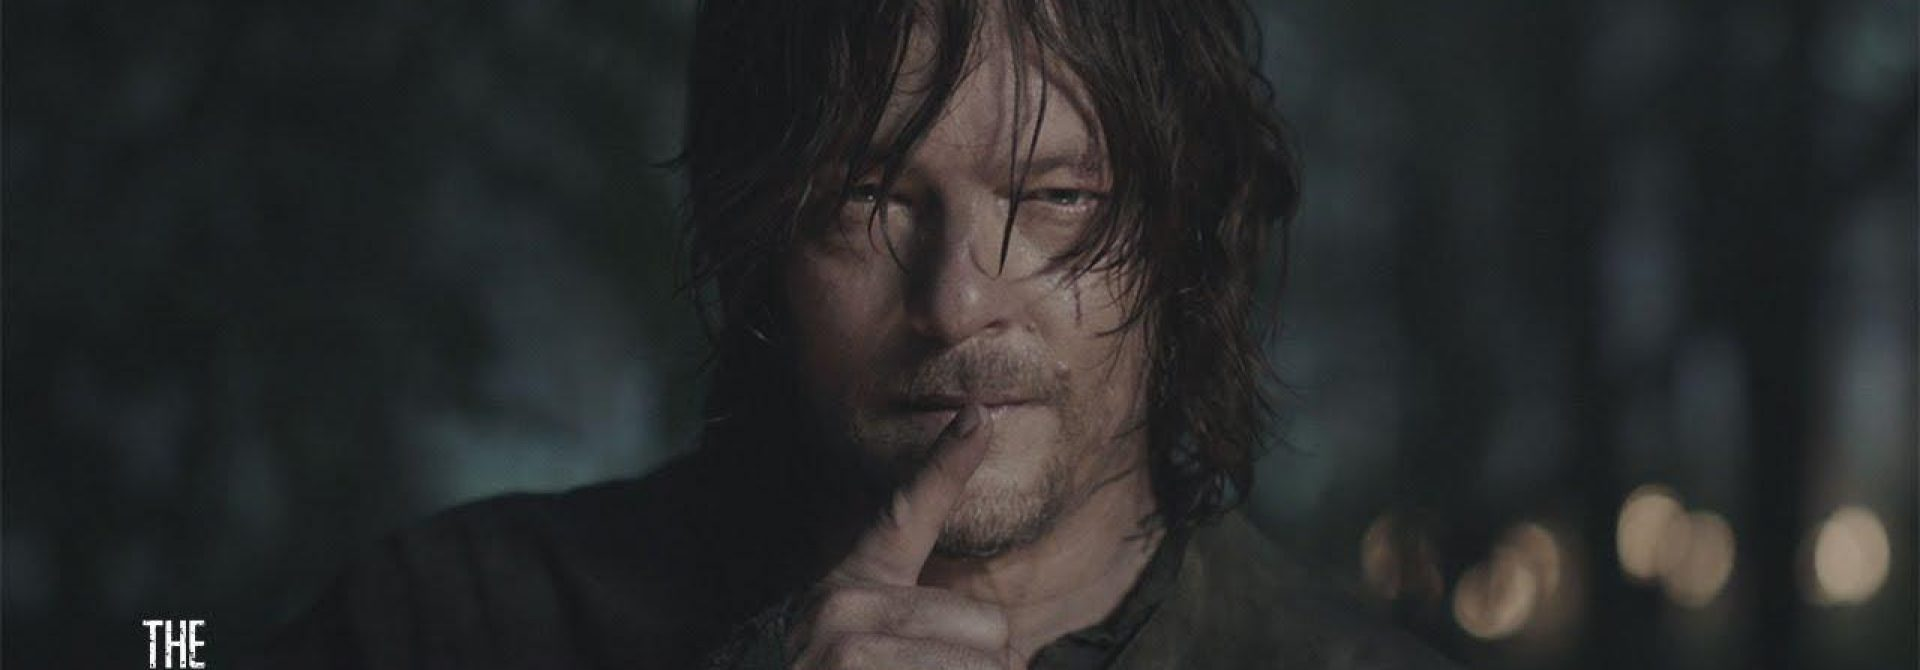 AMC Sets End Date For The Walking Dead